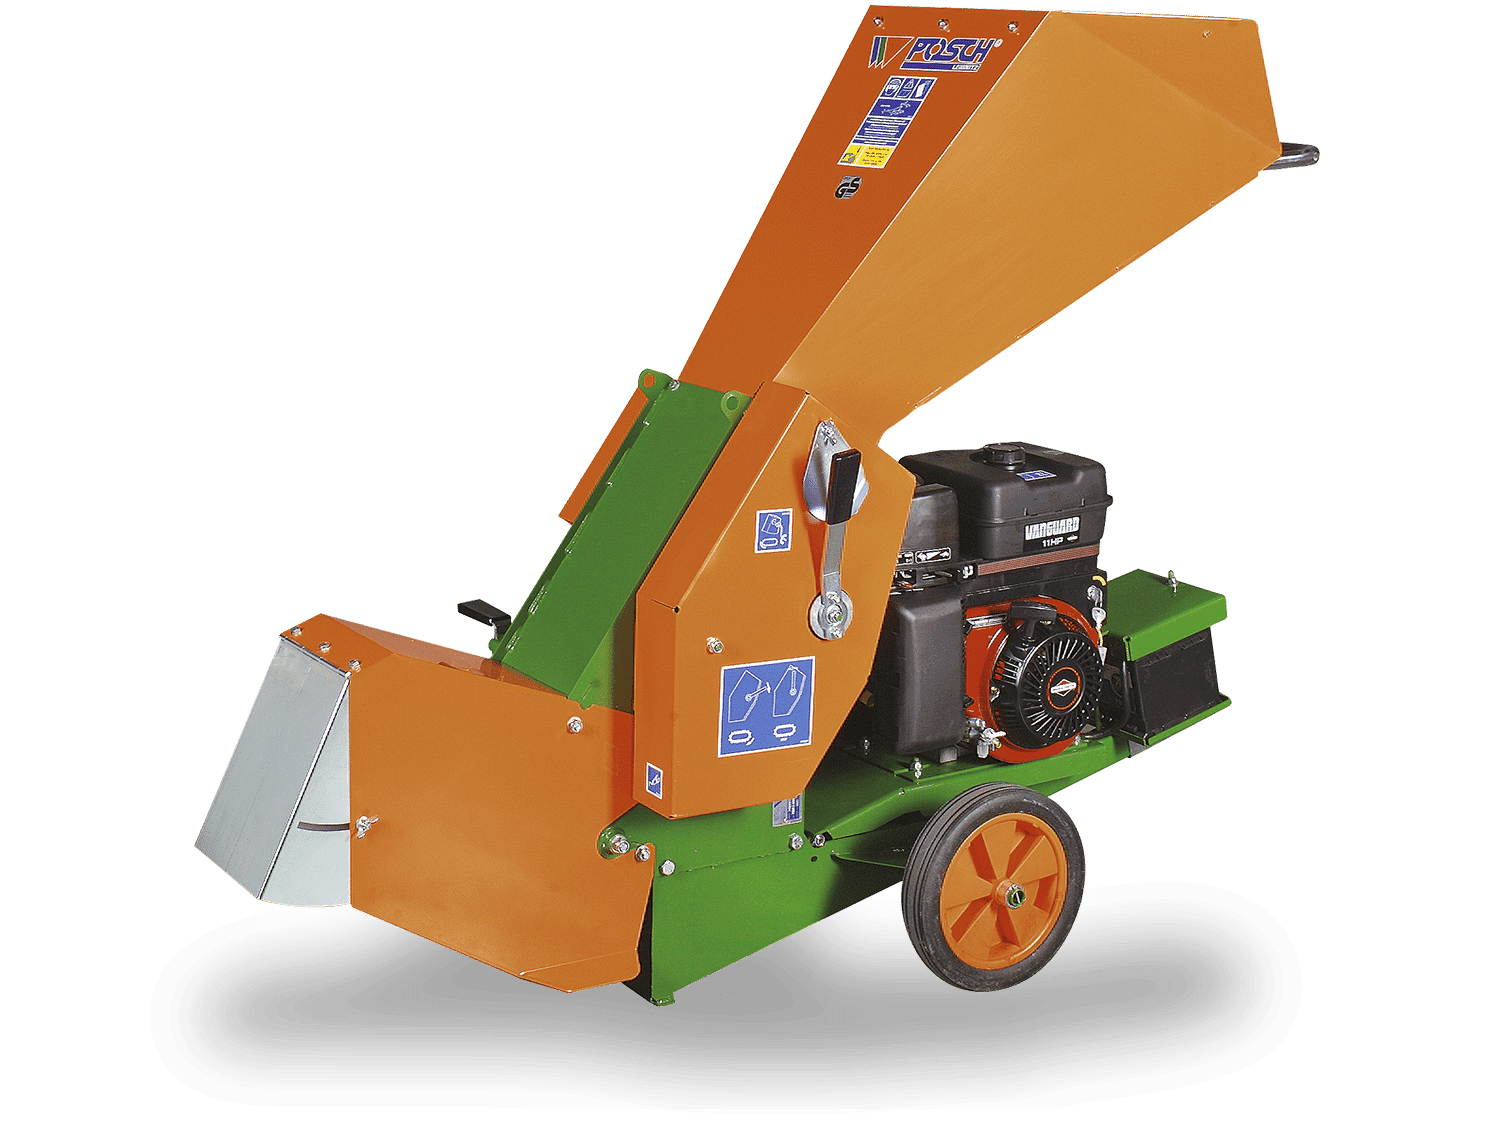 Profi shredder for professionals garden shredder shredder with infeed